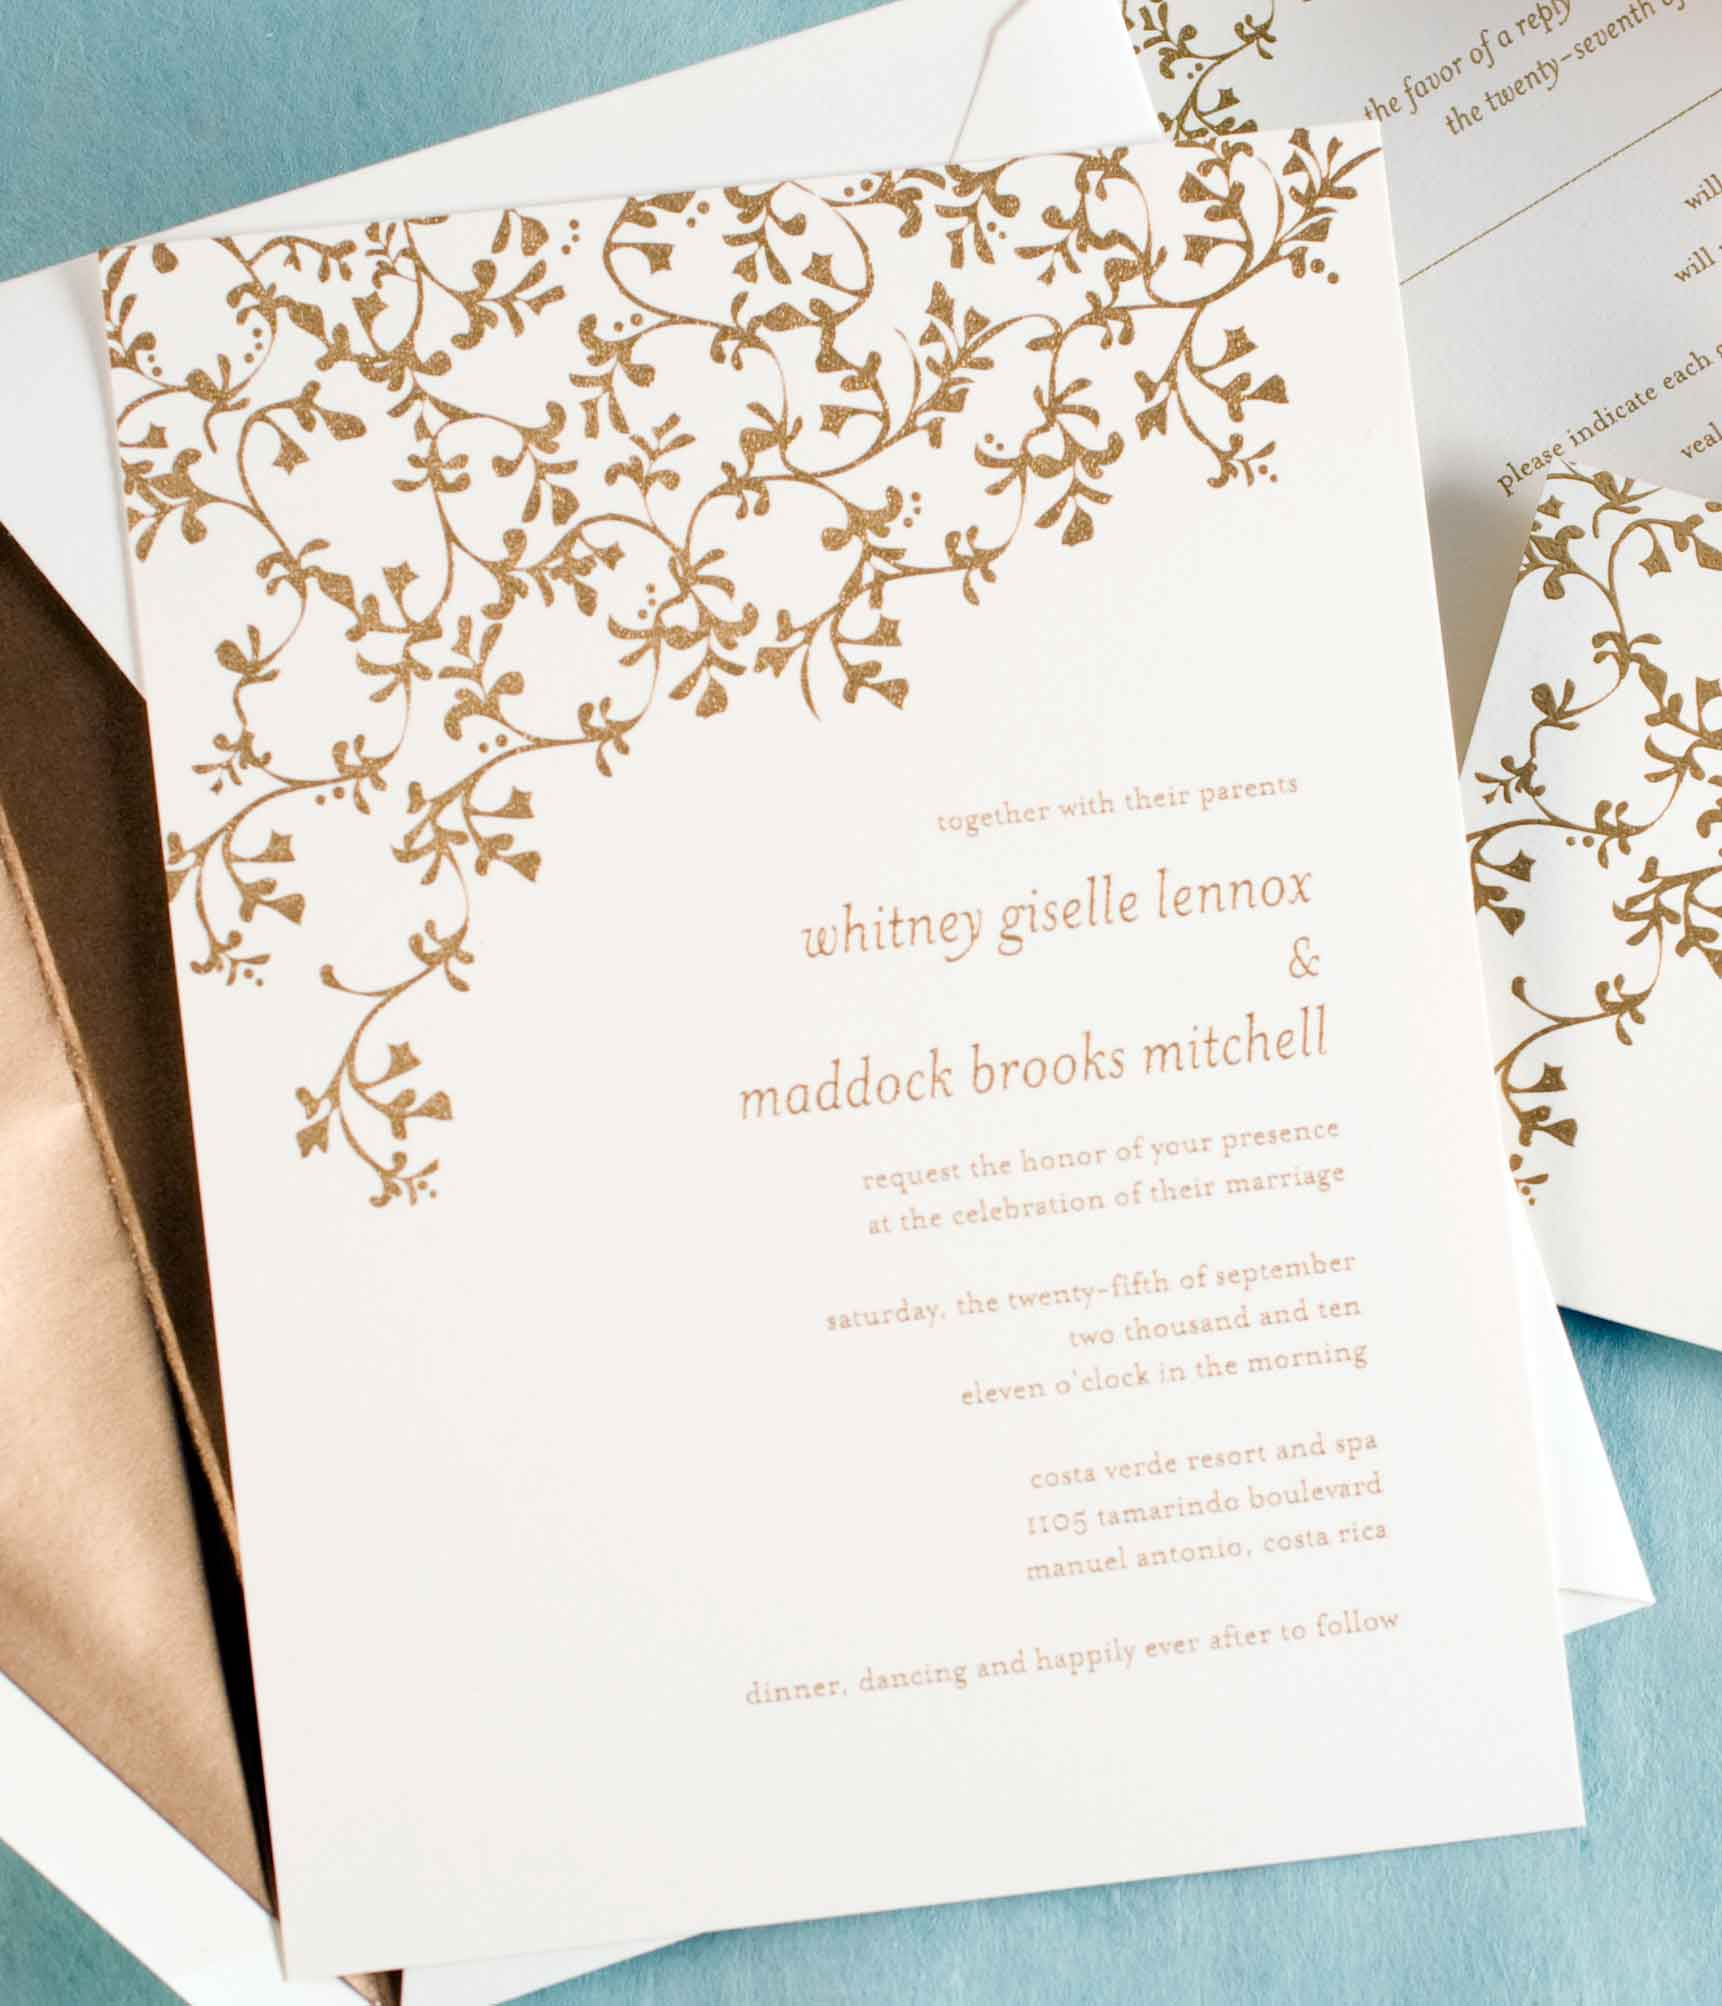 Wedding Paper Divas: Wedding Paper Divas Rounds Out Product Offering With